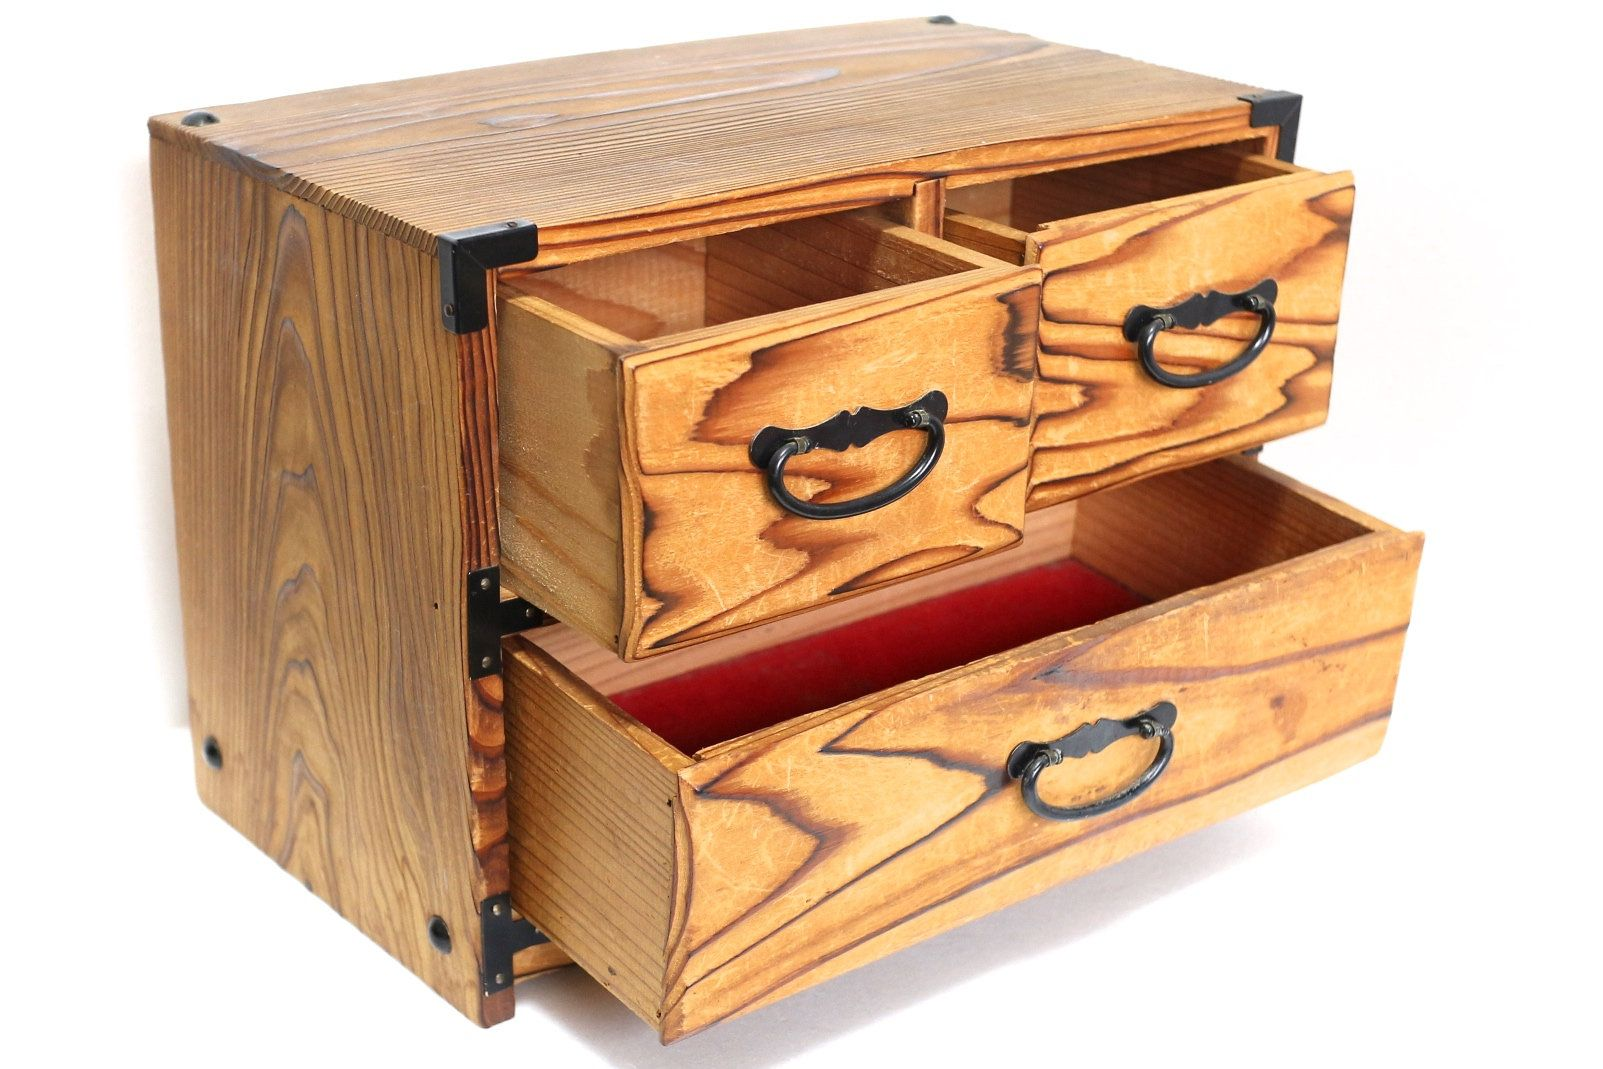 Japanese Kodansu Small Wood Drawer Japanese Wooden Chest Wooden Storage Box Trinket Box Small Cabinet Jewelry Box Wood Storage Box Wood Storage Wooden Chest